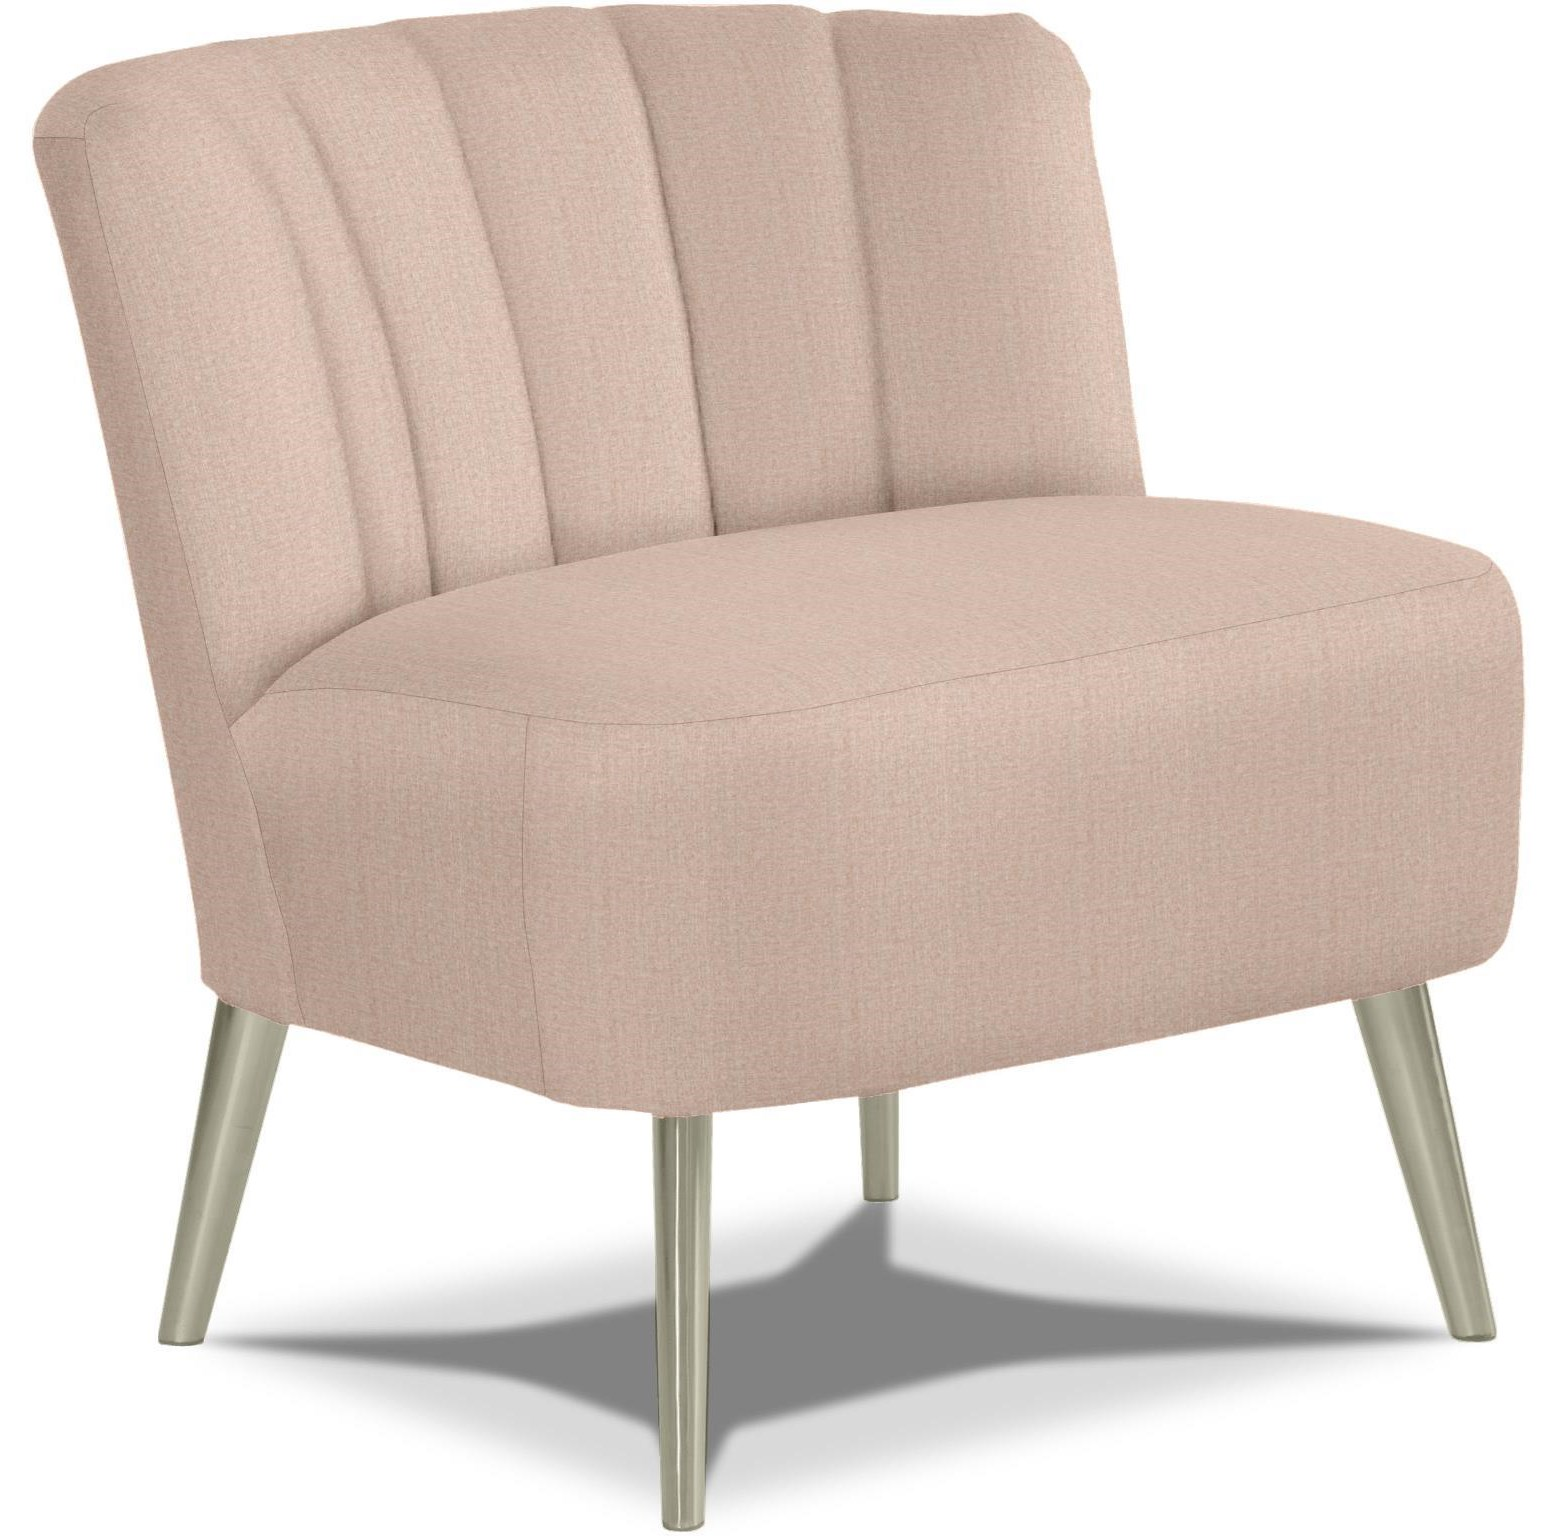 Amel Accent Chair by Best Home Furnishings at Crowley Furniture & Mattress